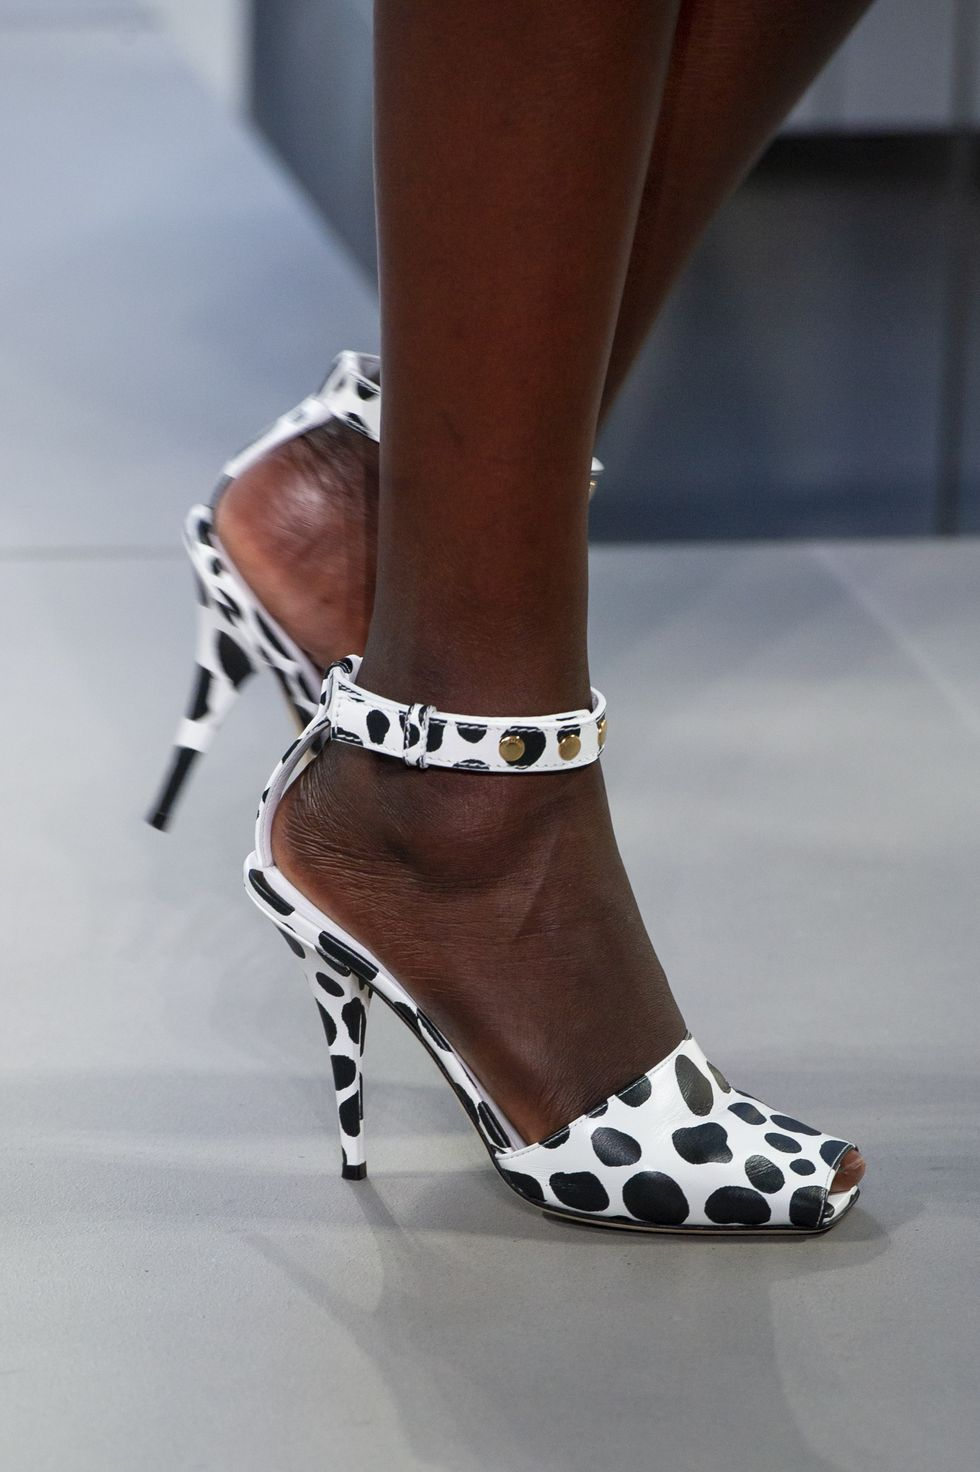 b08ef8bf26d A Definitive List of All the Shoe Trends You NEED to Know About in 2019